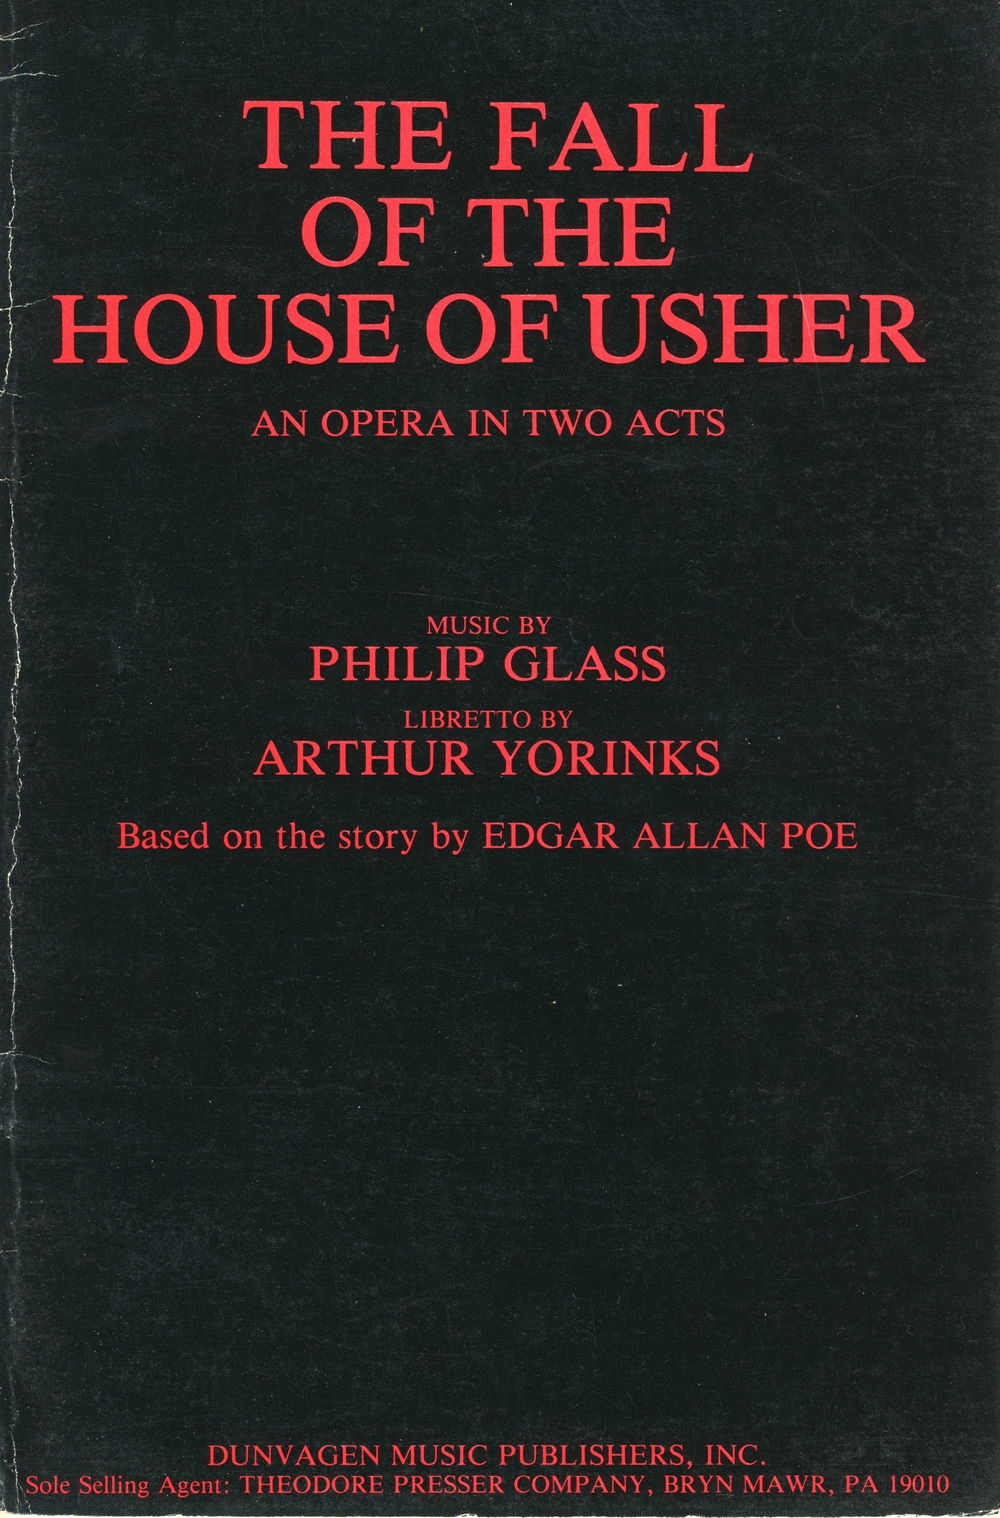 The Fall of the House of Usher.jpg